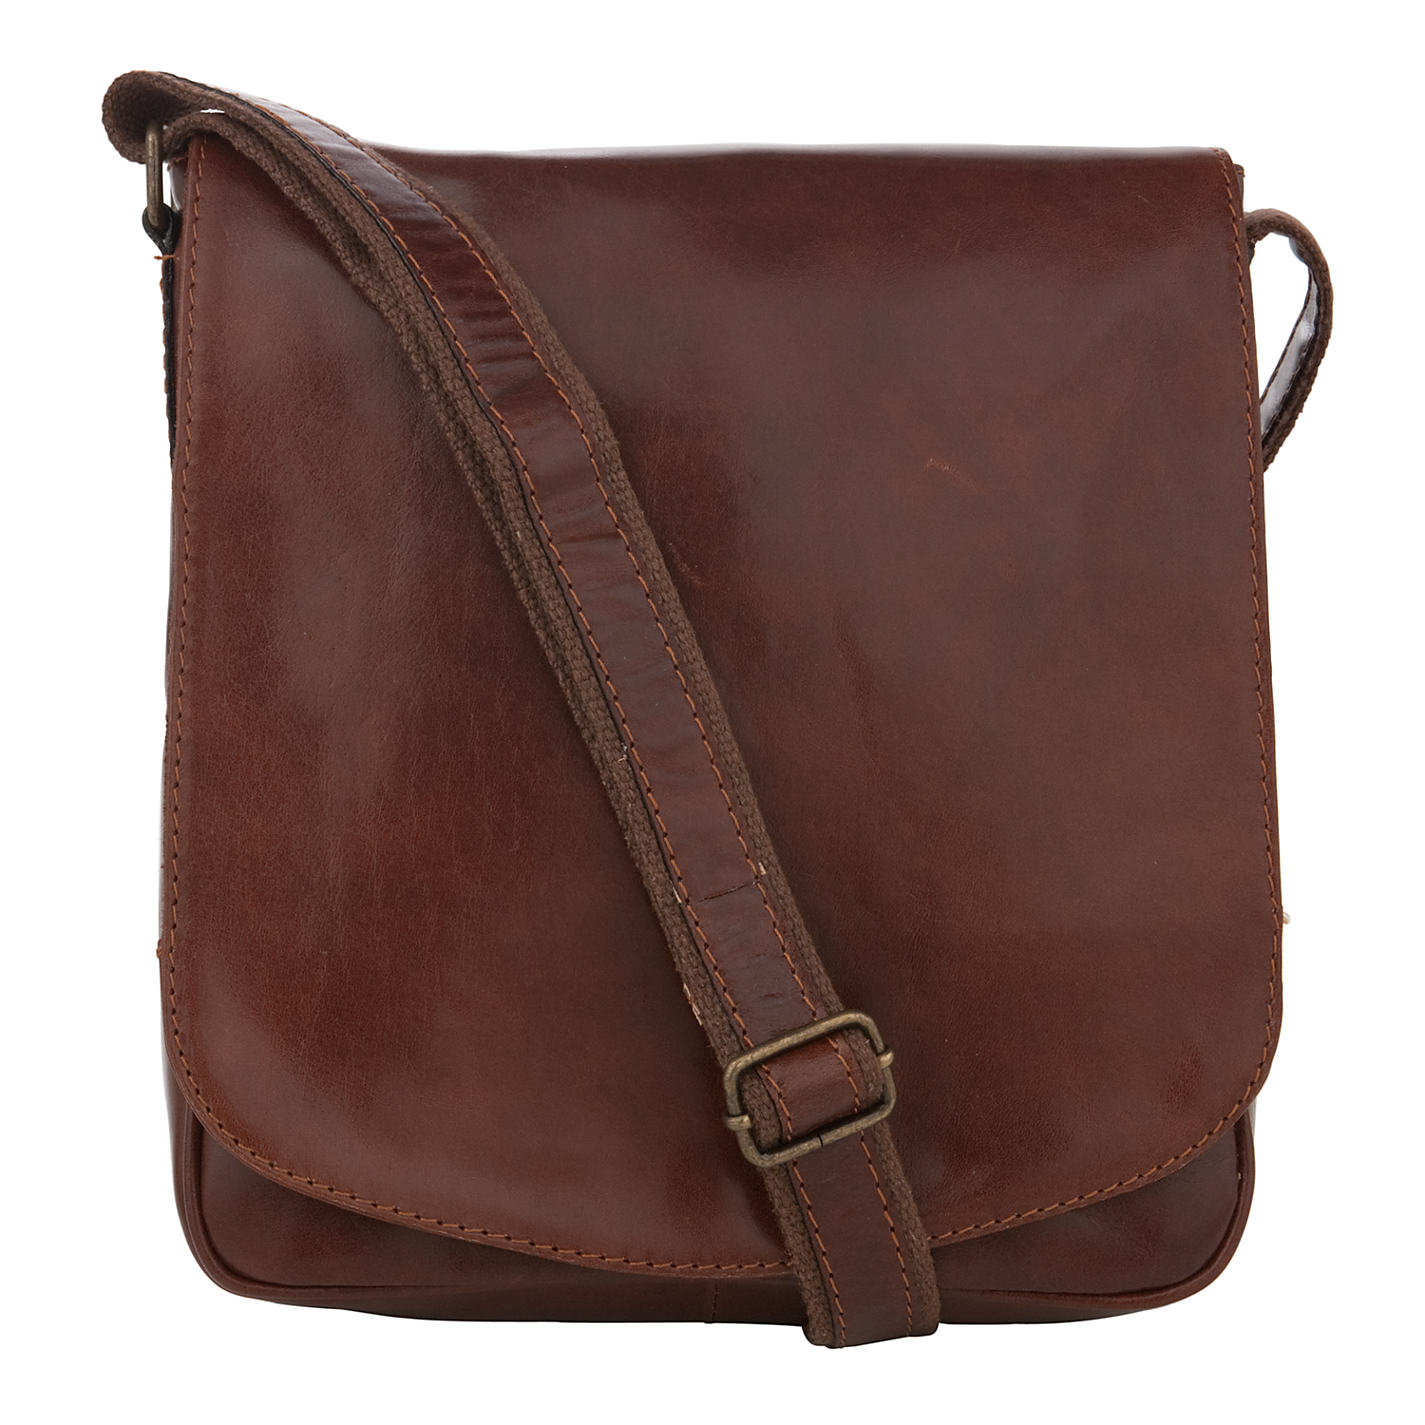 Mens Shoulder Bag Leather – Shoulder Travel Bag